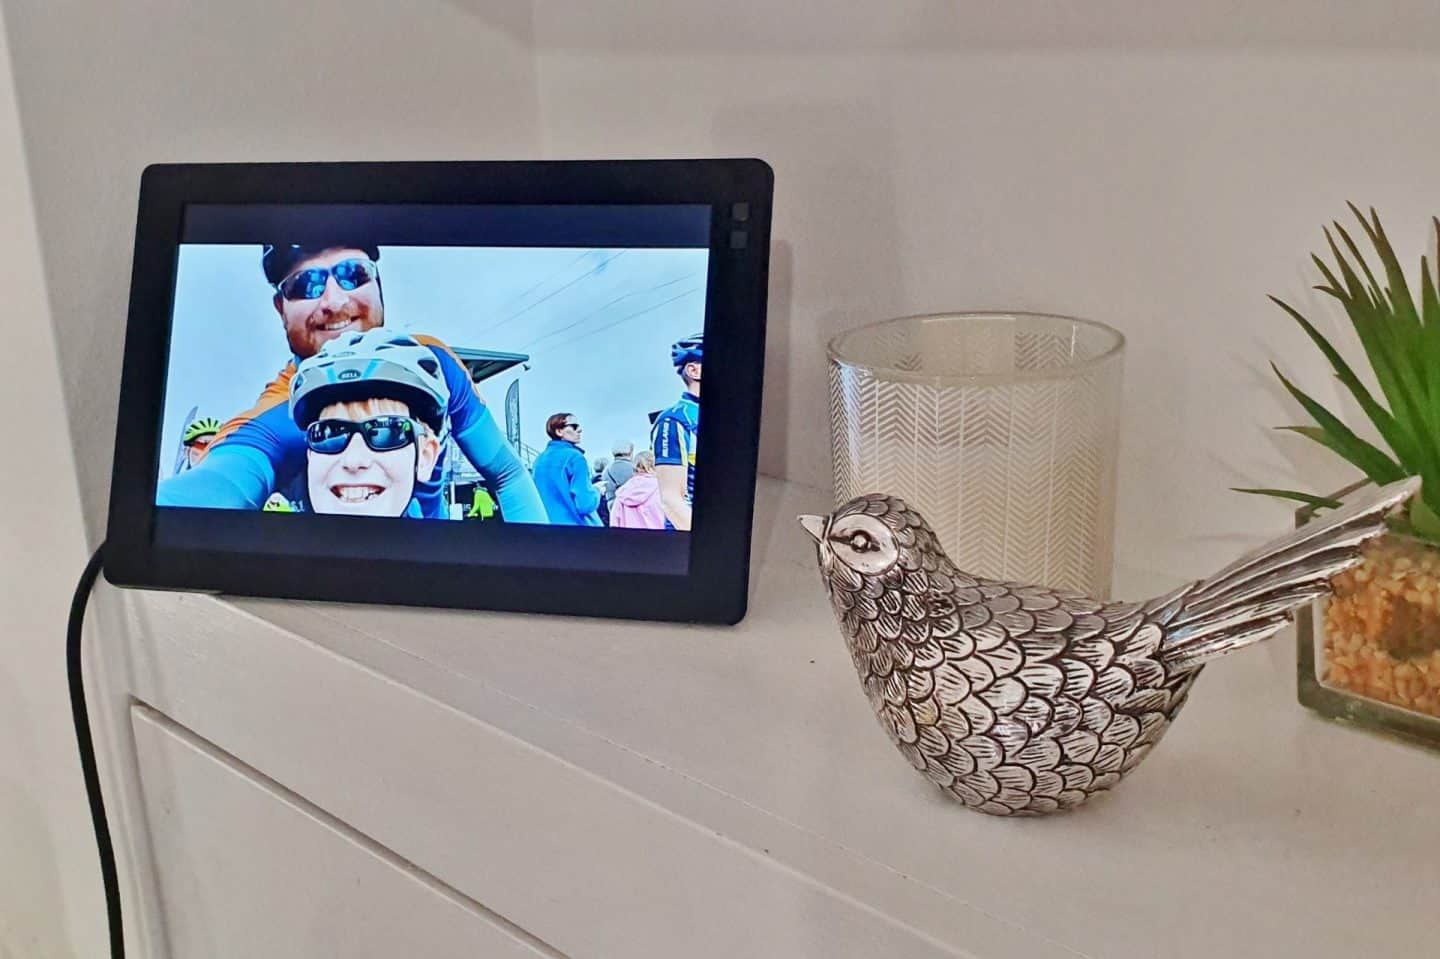 Nixplay smart frame displays photos from your phone